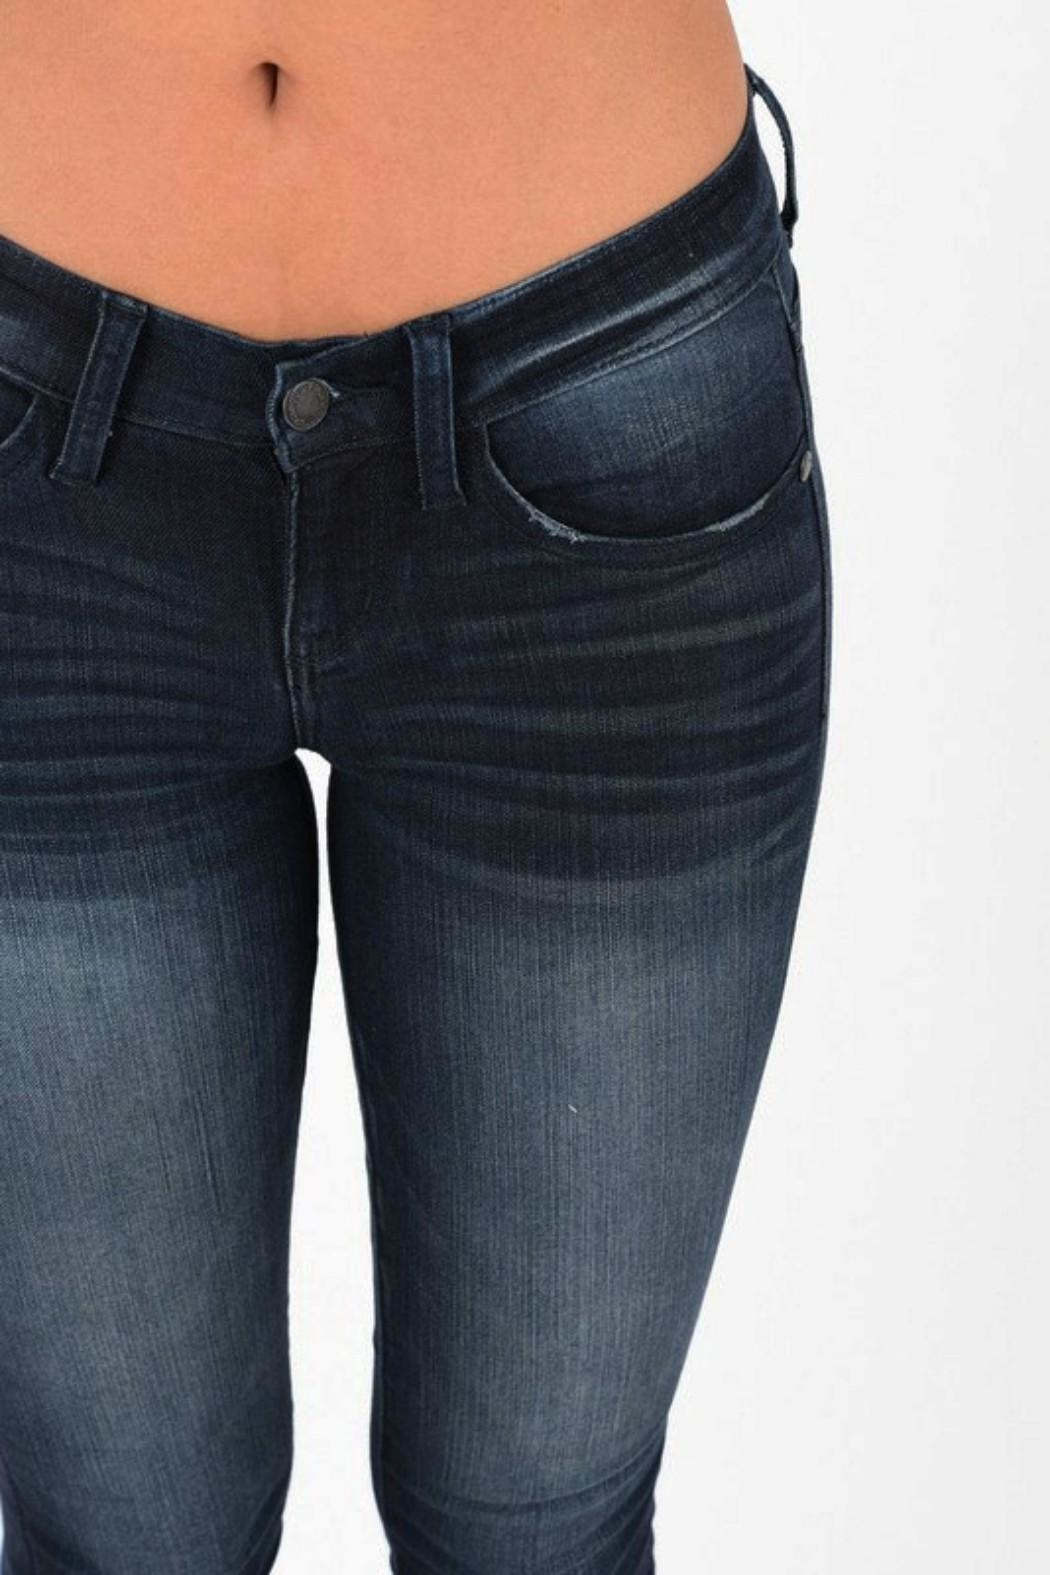 Judy Blue Dark Stretch Skinny - Front Full Image